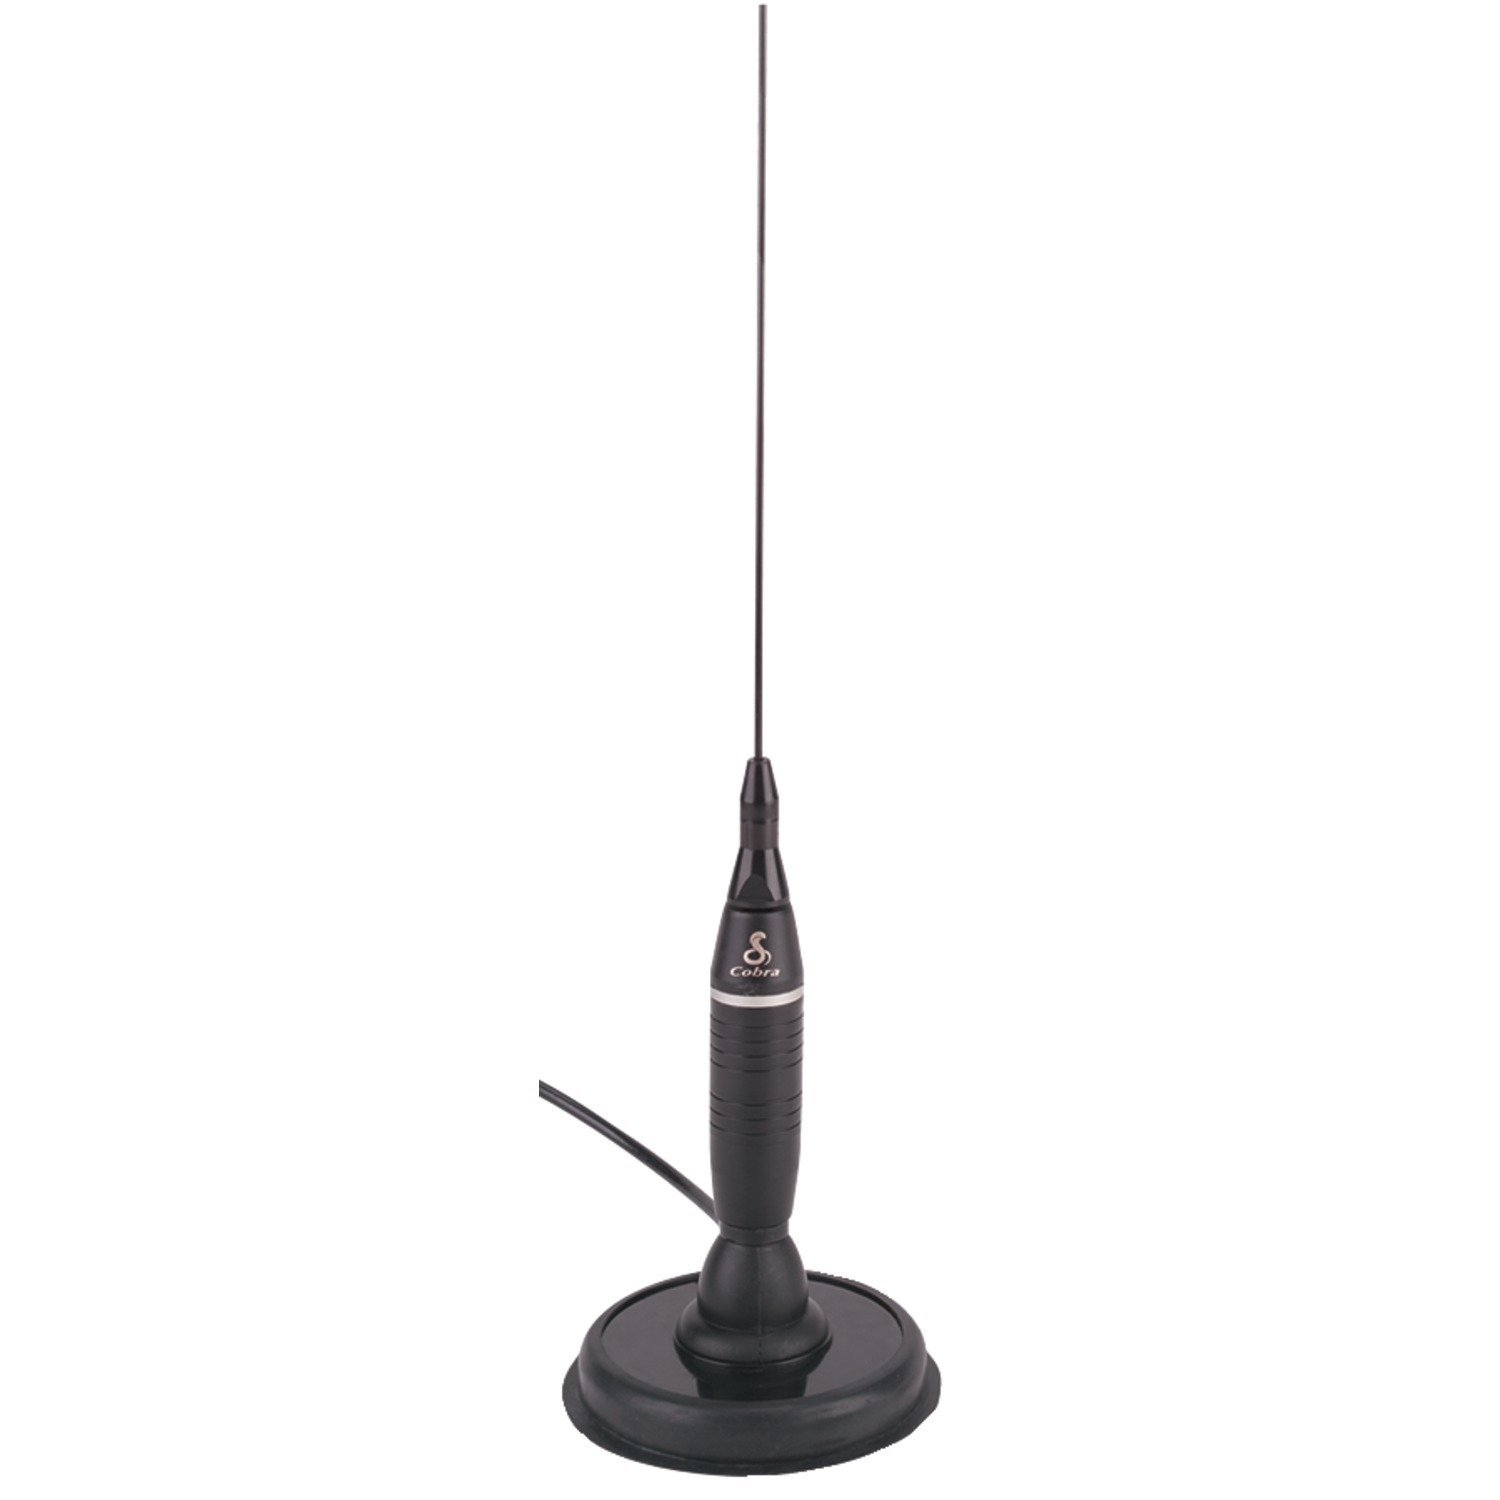 Top 5 Best CB Antenna worth Spending Money On